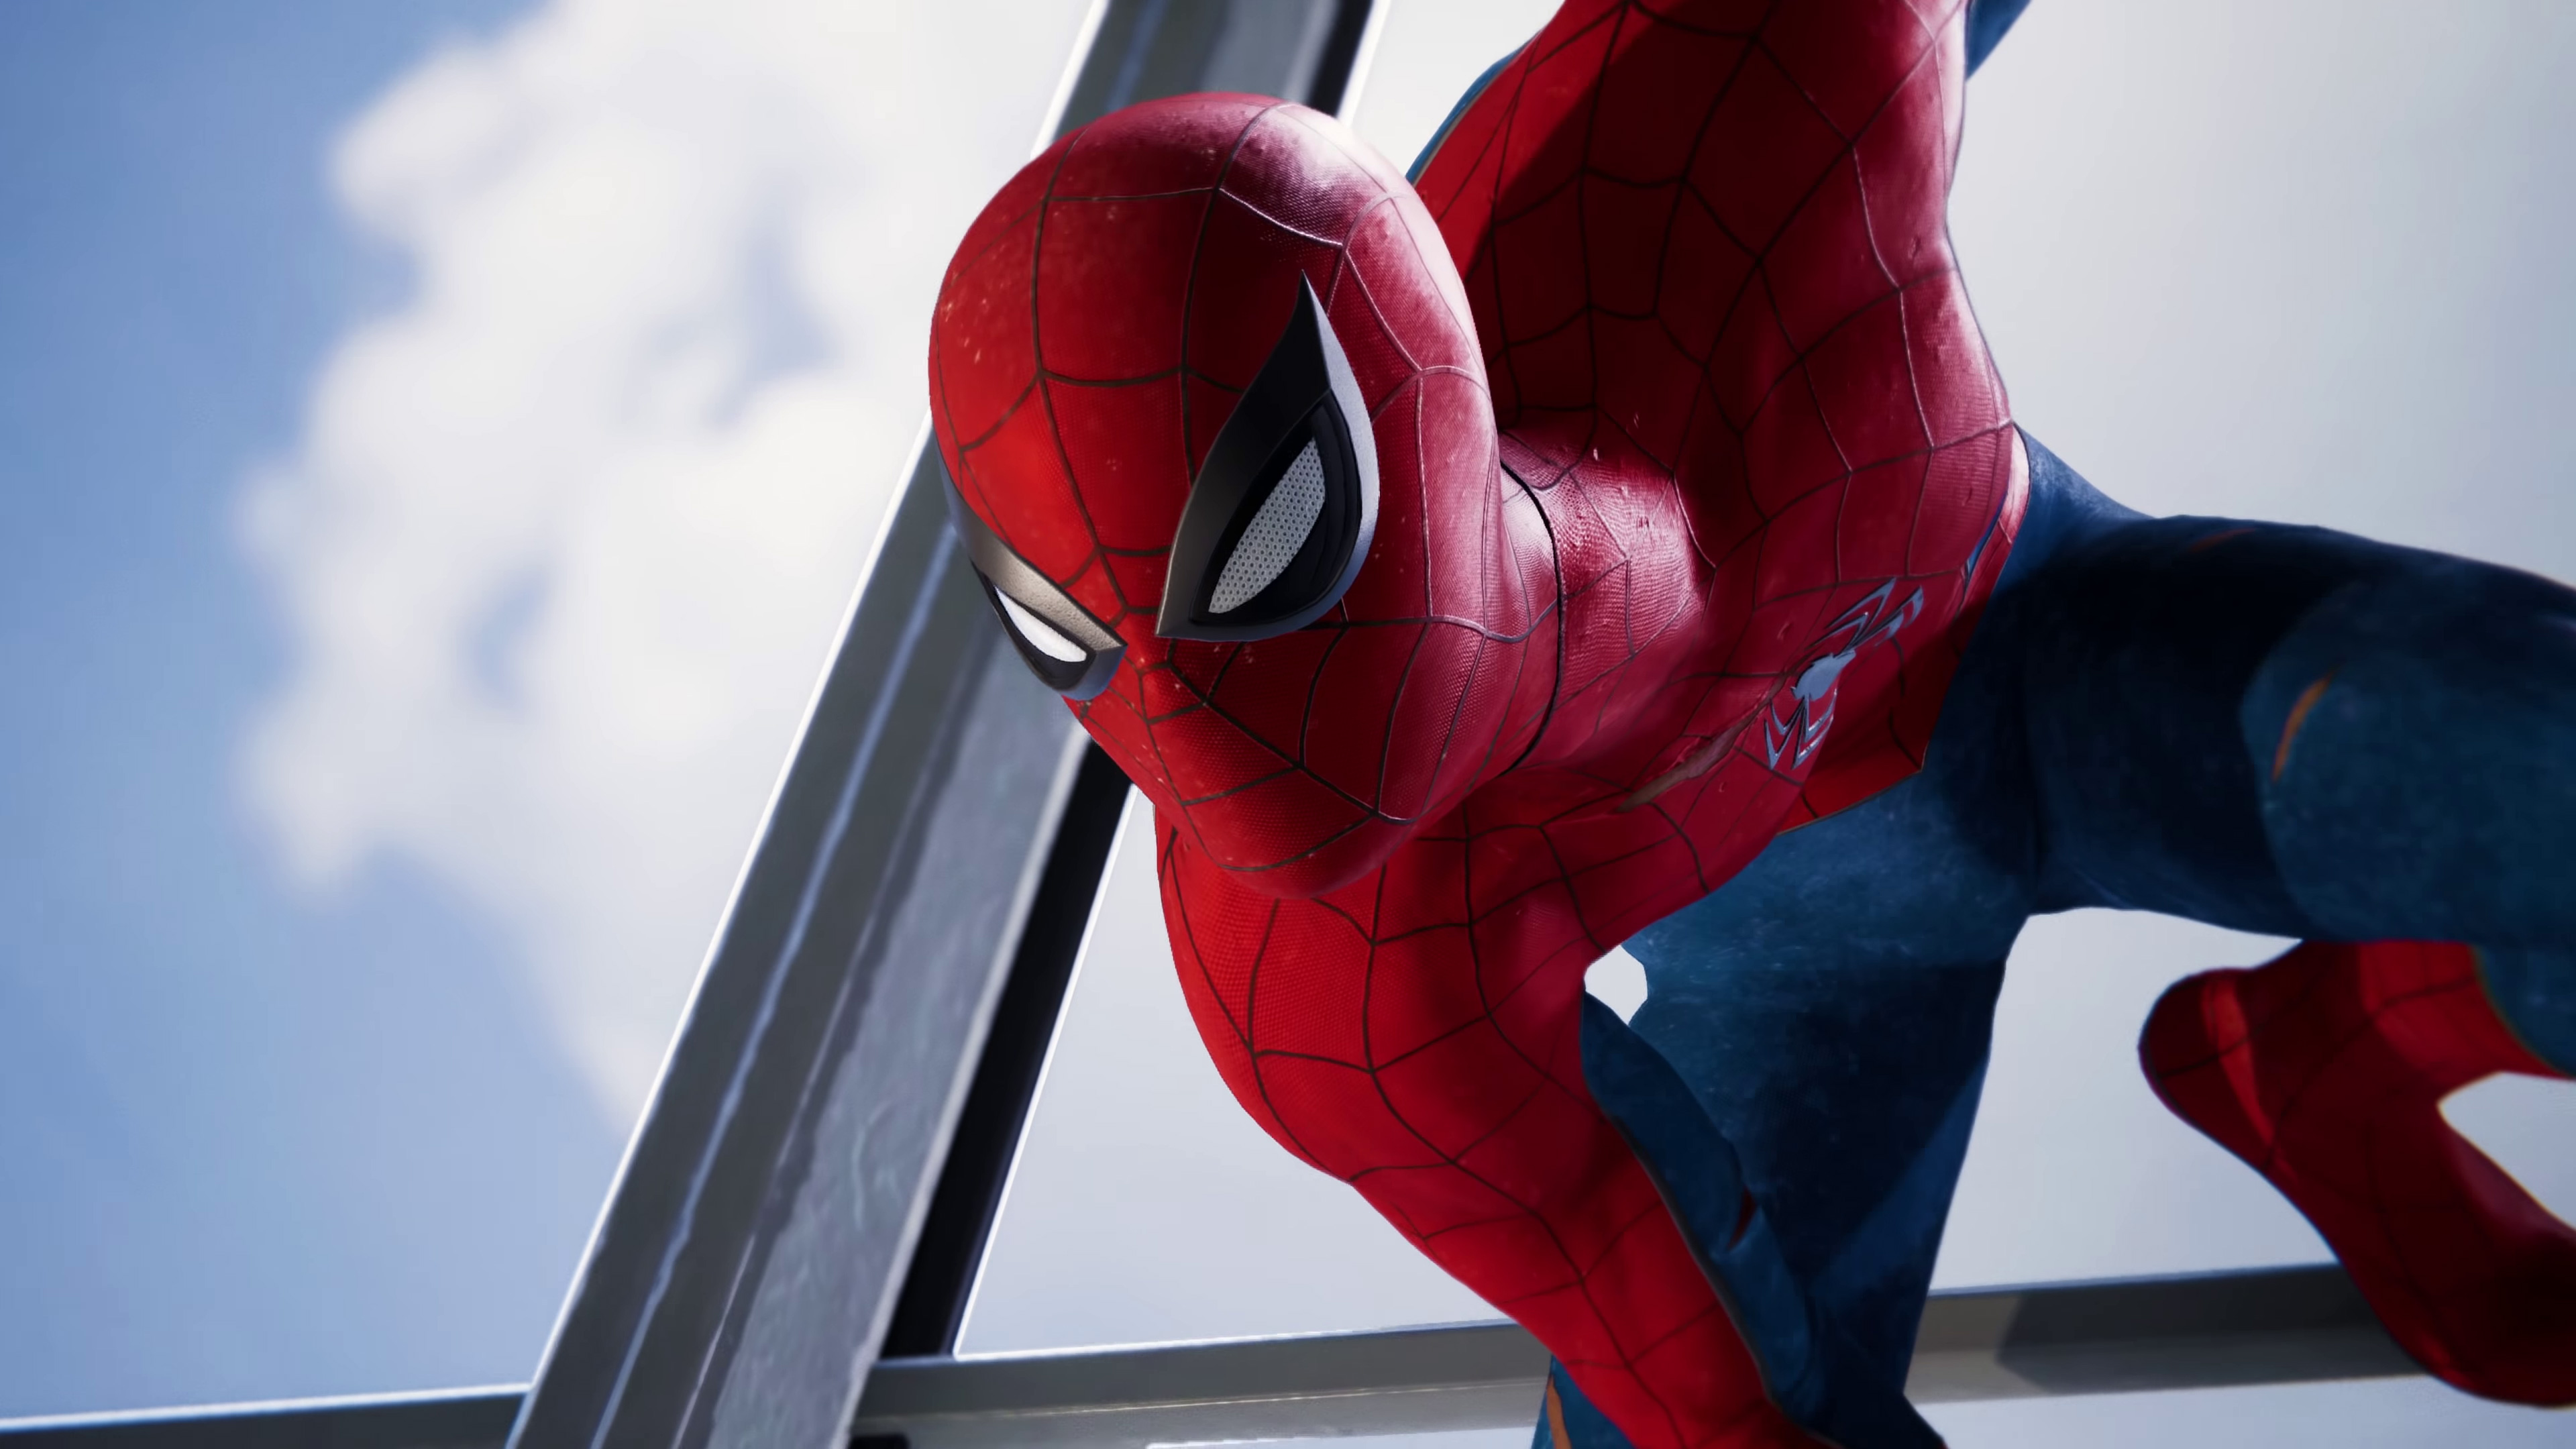 Spiderman Ps4 2018 4k Hd Games 4k Wallpapers Images Backgrounds Photos And Pictures